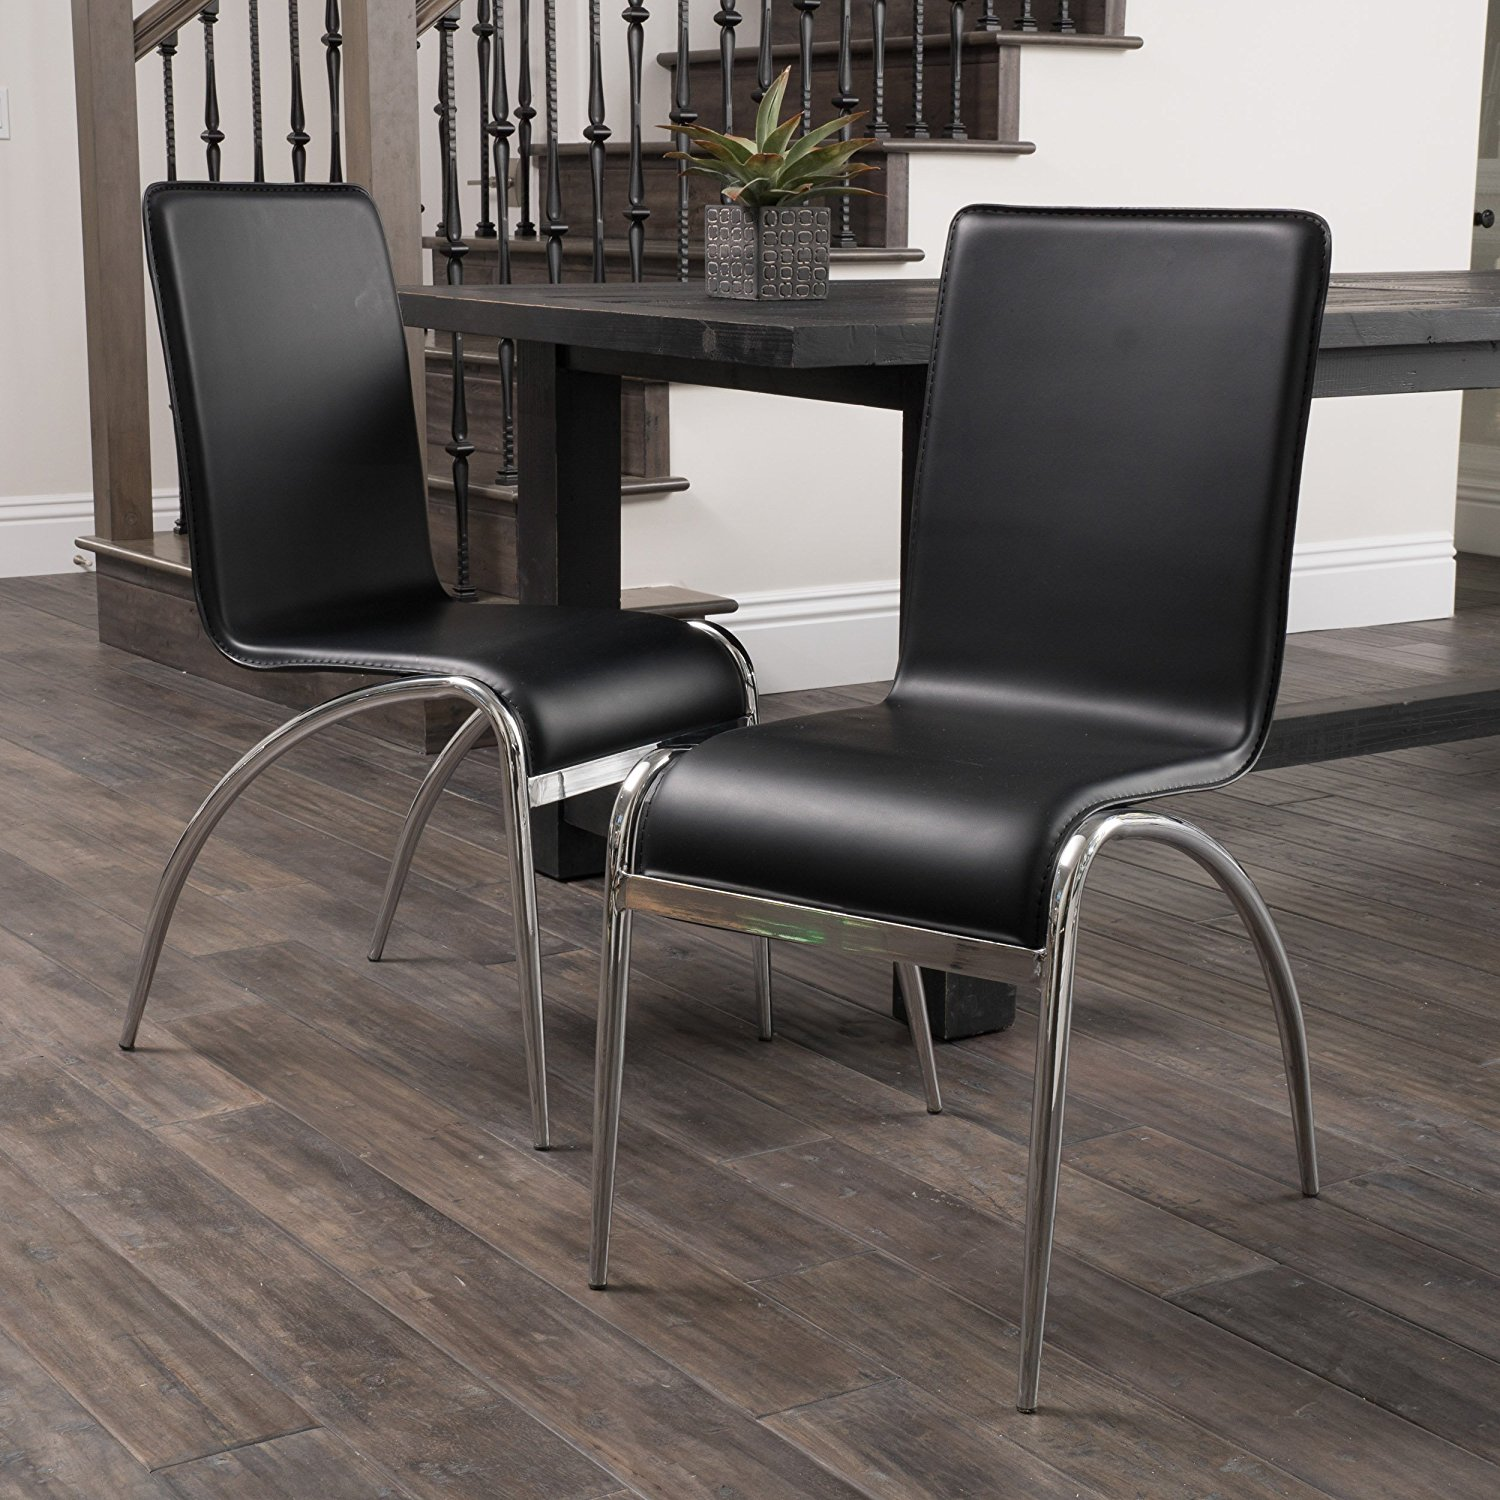 Enola Dining Furniture ~ Modern Design Dining Chairs (Black) (set of 2)